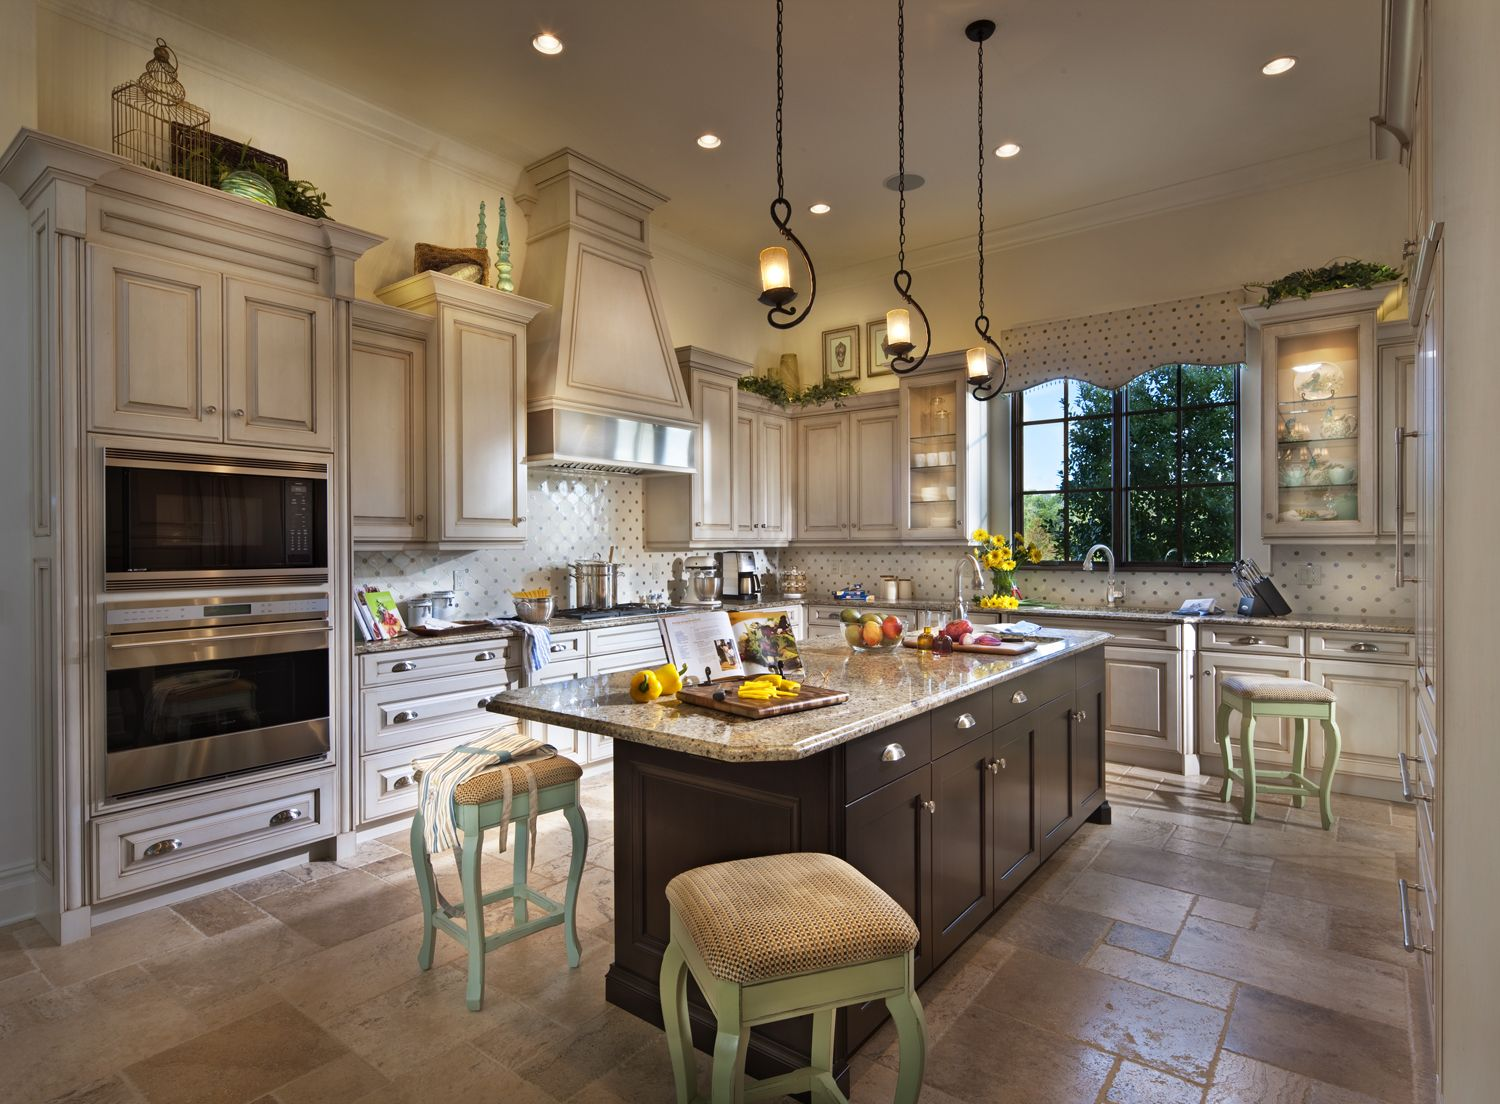 Kitchen of one of the Disney Golden Oak homes. Love it! | For the ...